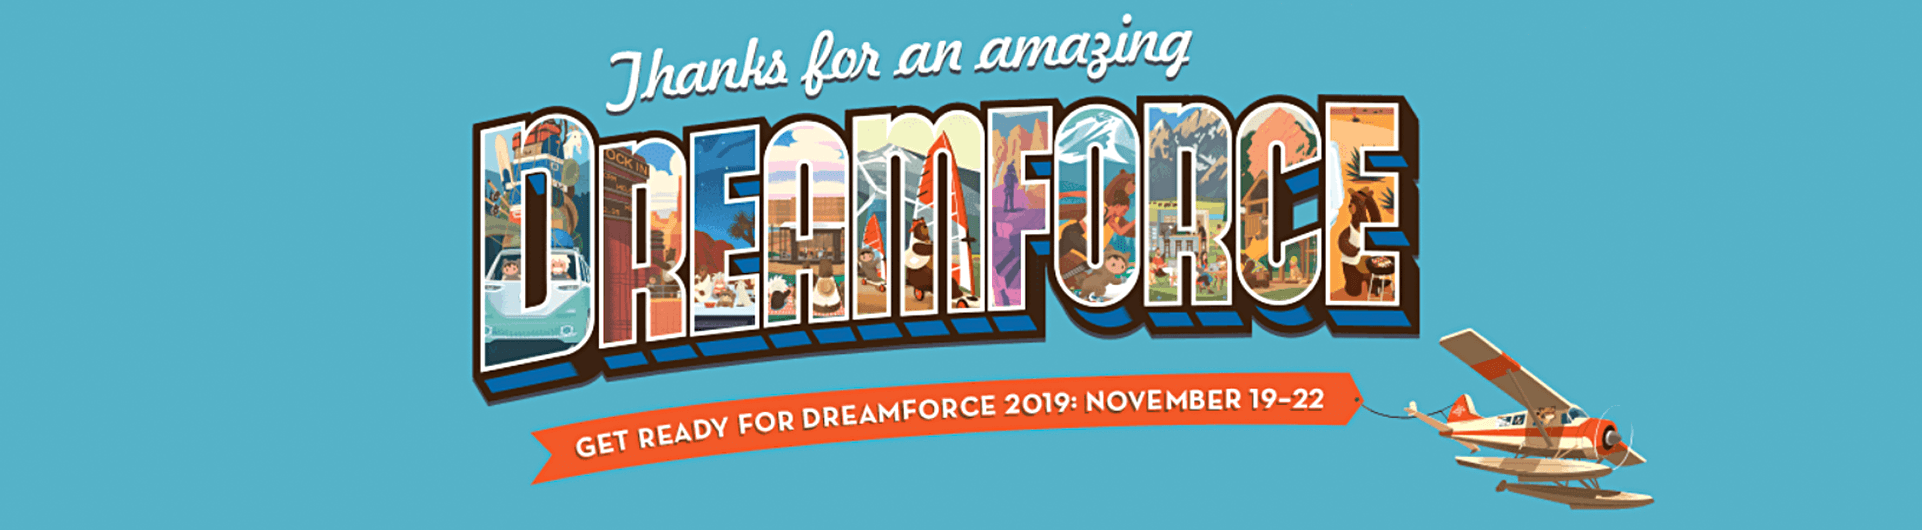 Salesforce Dreamforce 2018